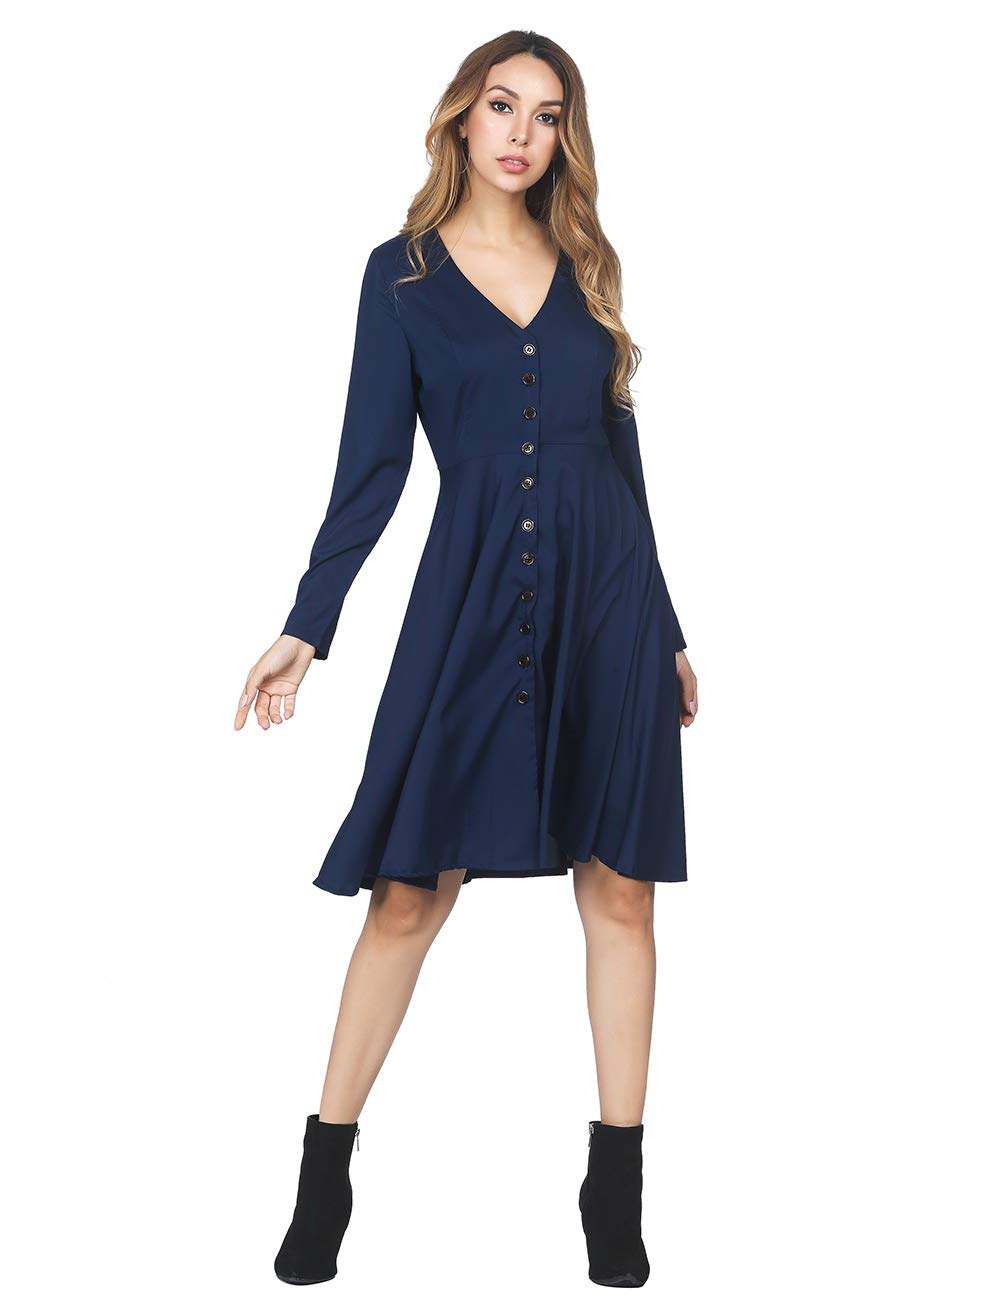 KUREAS Women's Dresses-Long Sleeve V Neck Button T Shirt Midi Skater Dress